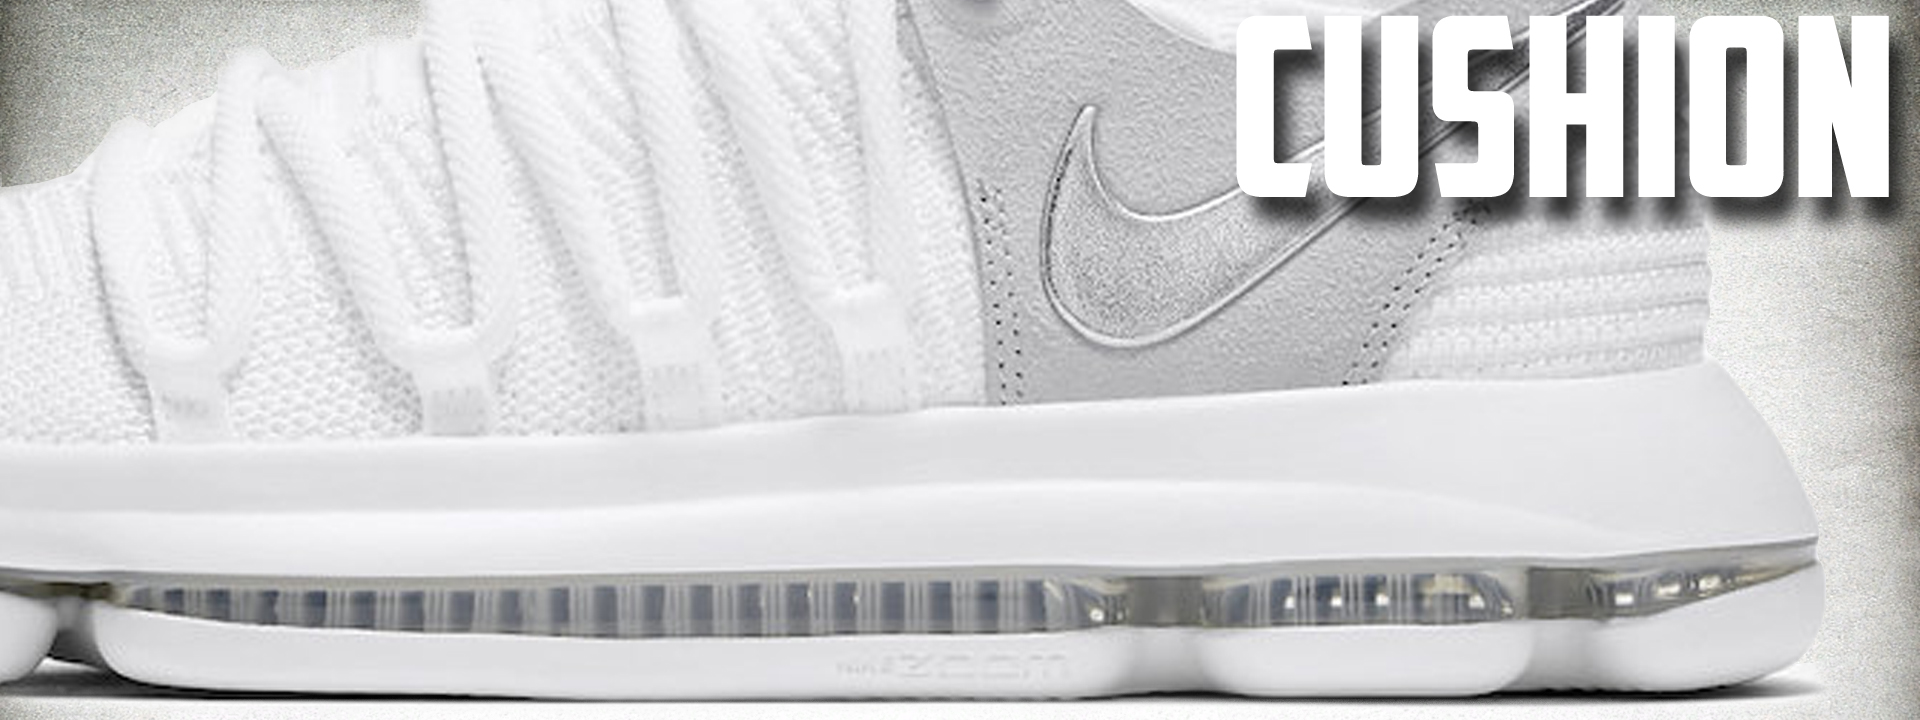 online retailer e33d8 b8030 Nike KD 10 Performance Review - WearTesters